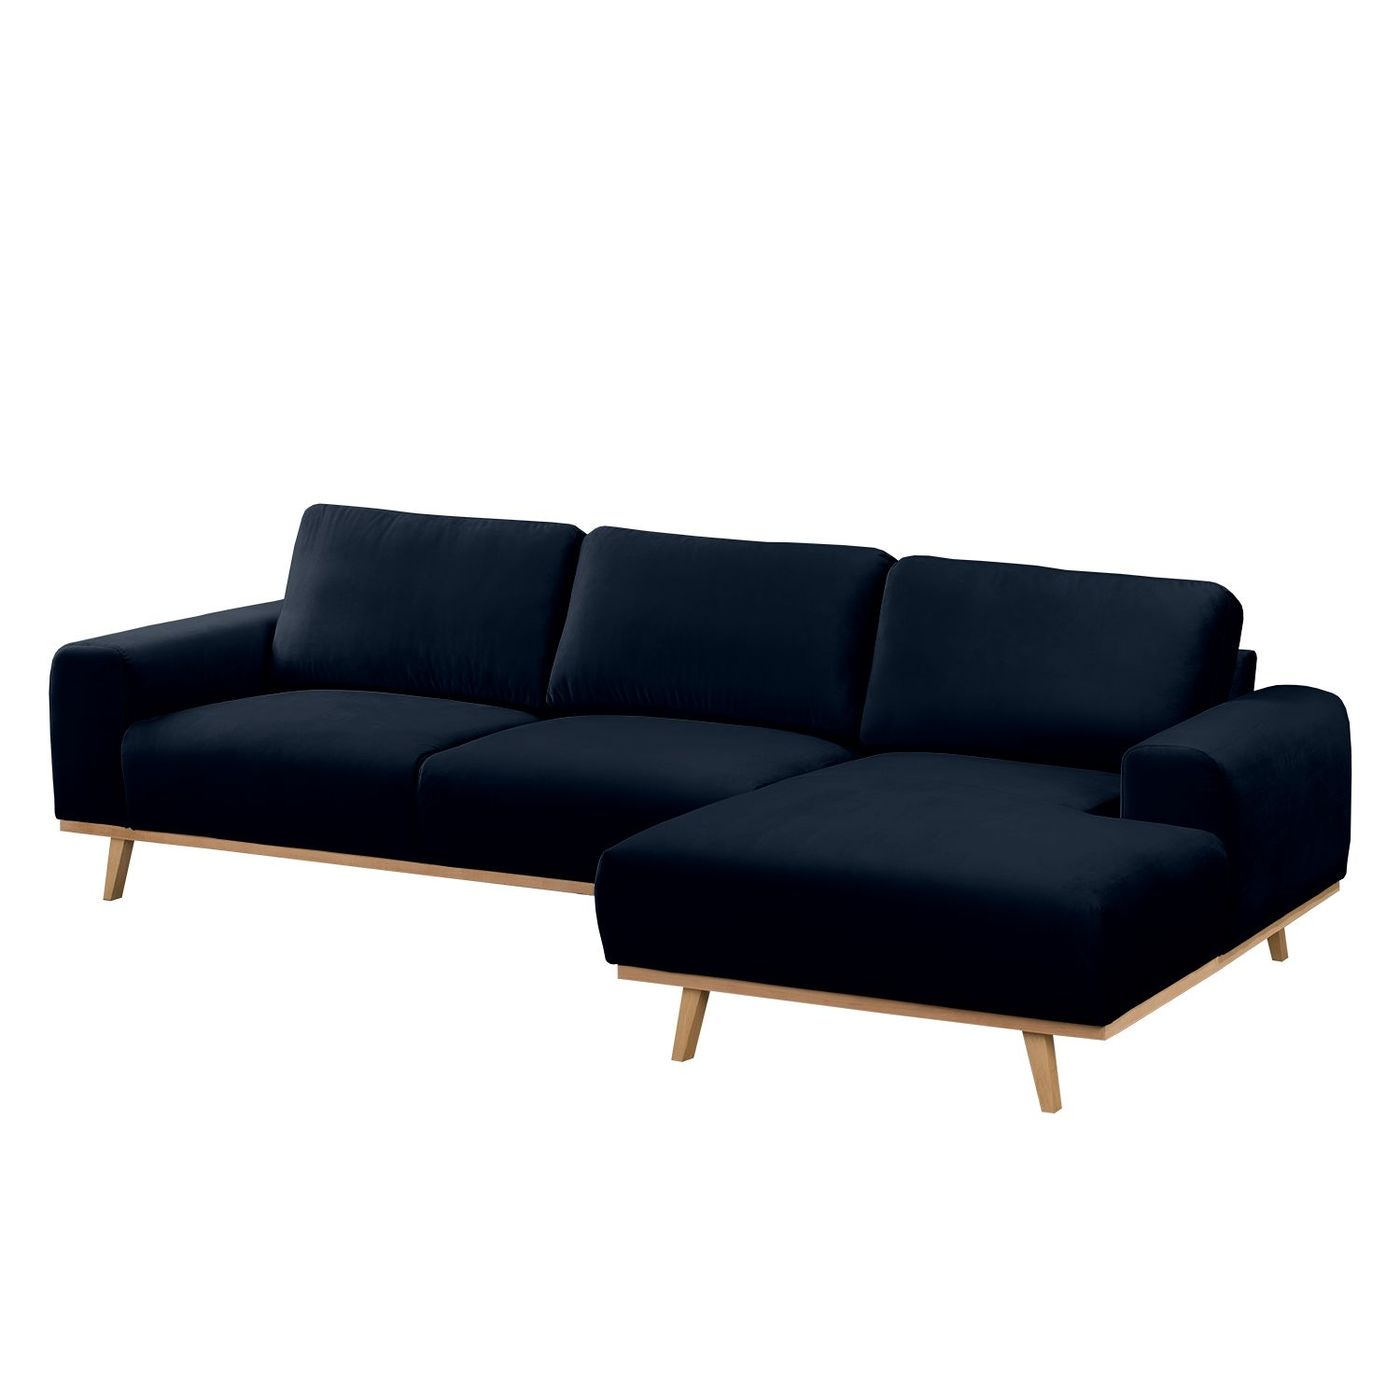 Kanapee Sofa Kanapee Sofa Amazing Kanapeesofa In With Kanapee Sofa Of